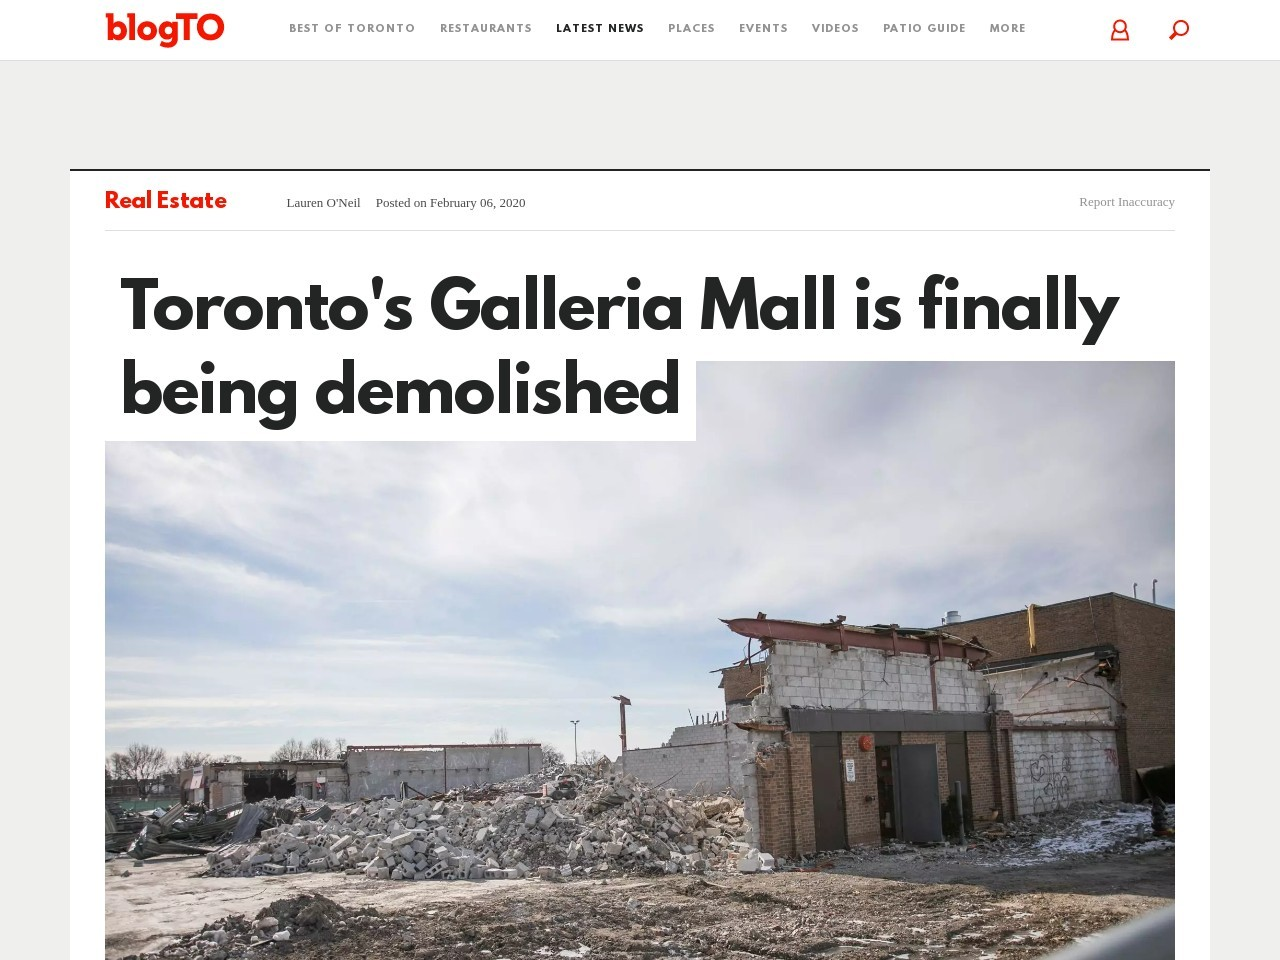 Toronto's Galleria Mall is finally being demolished